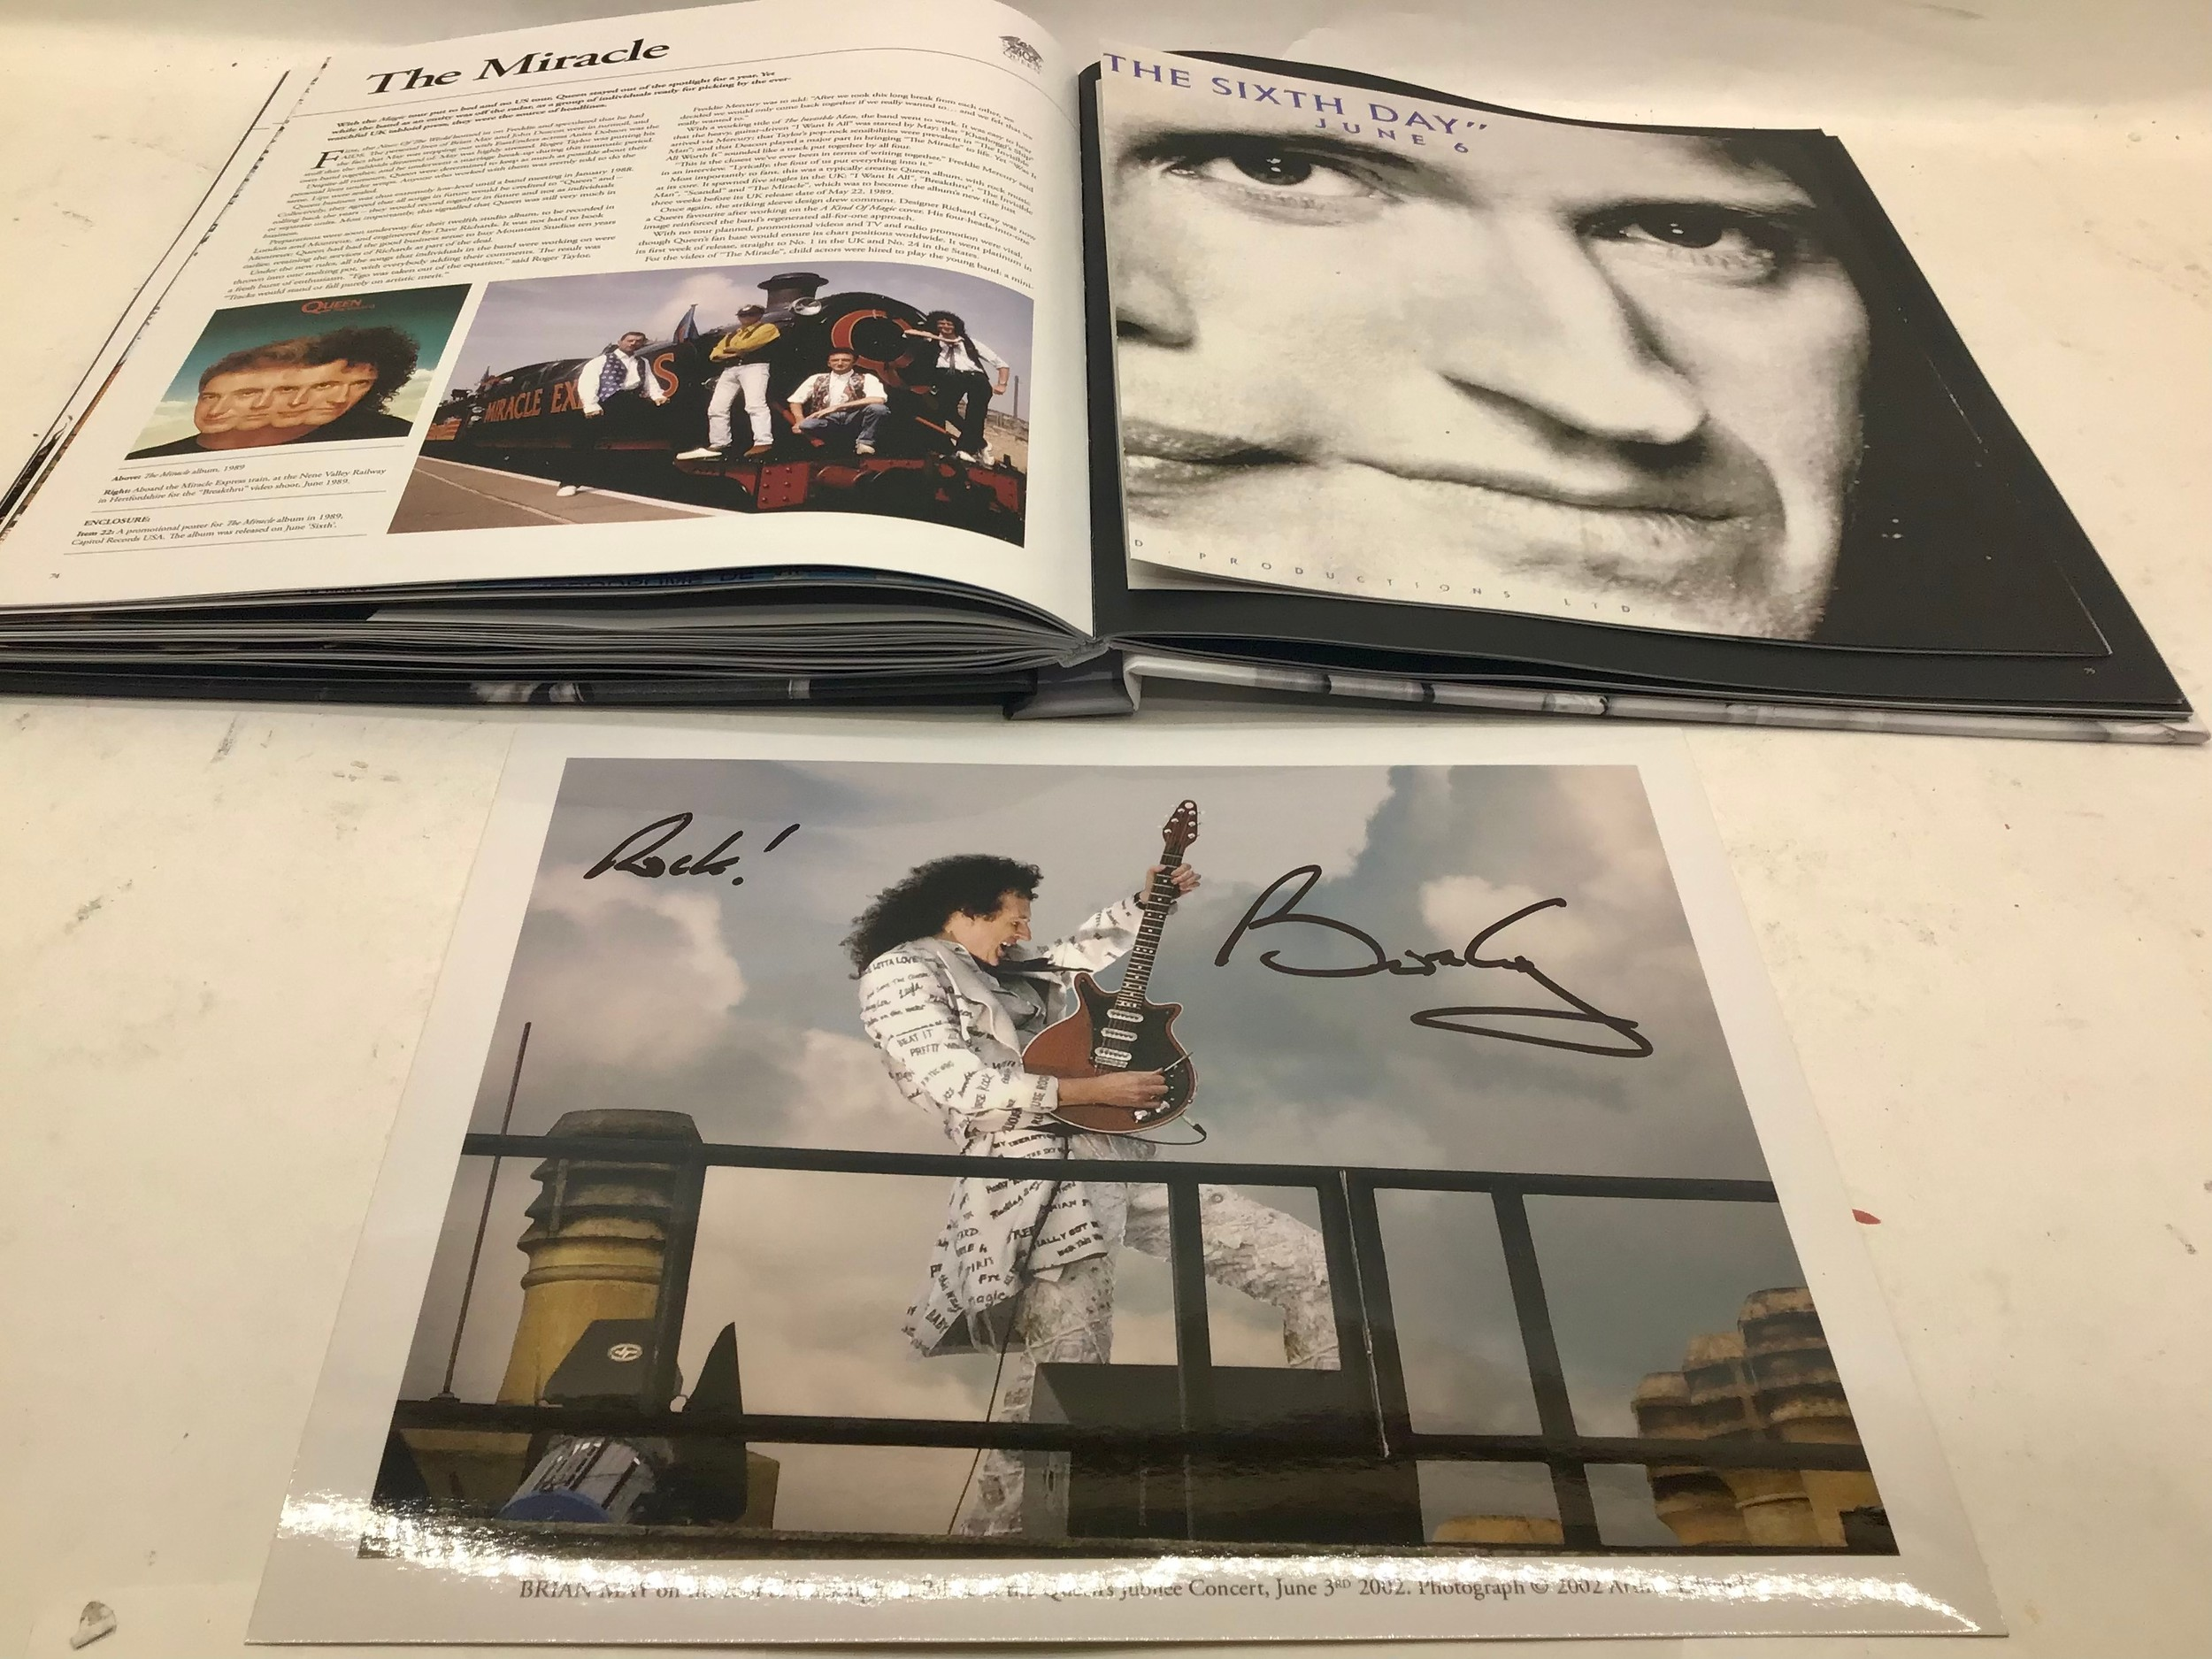 40 YEARS OF QUEEN. The book showcases the band, its members, recordings and concerts through - Image 6 of 6